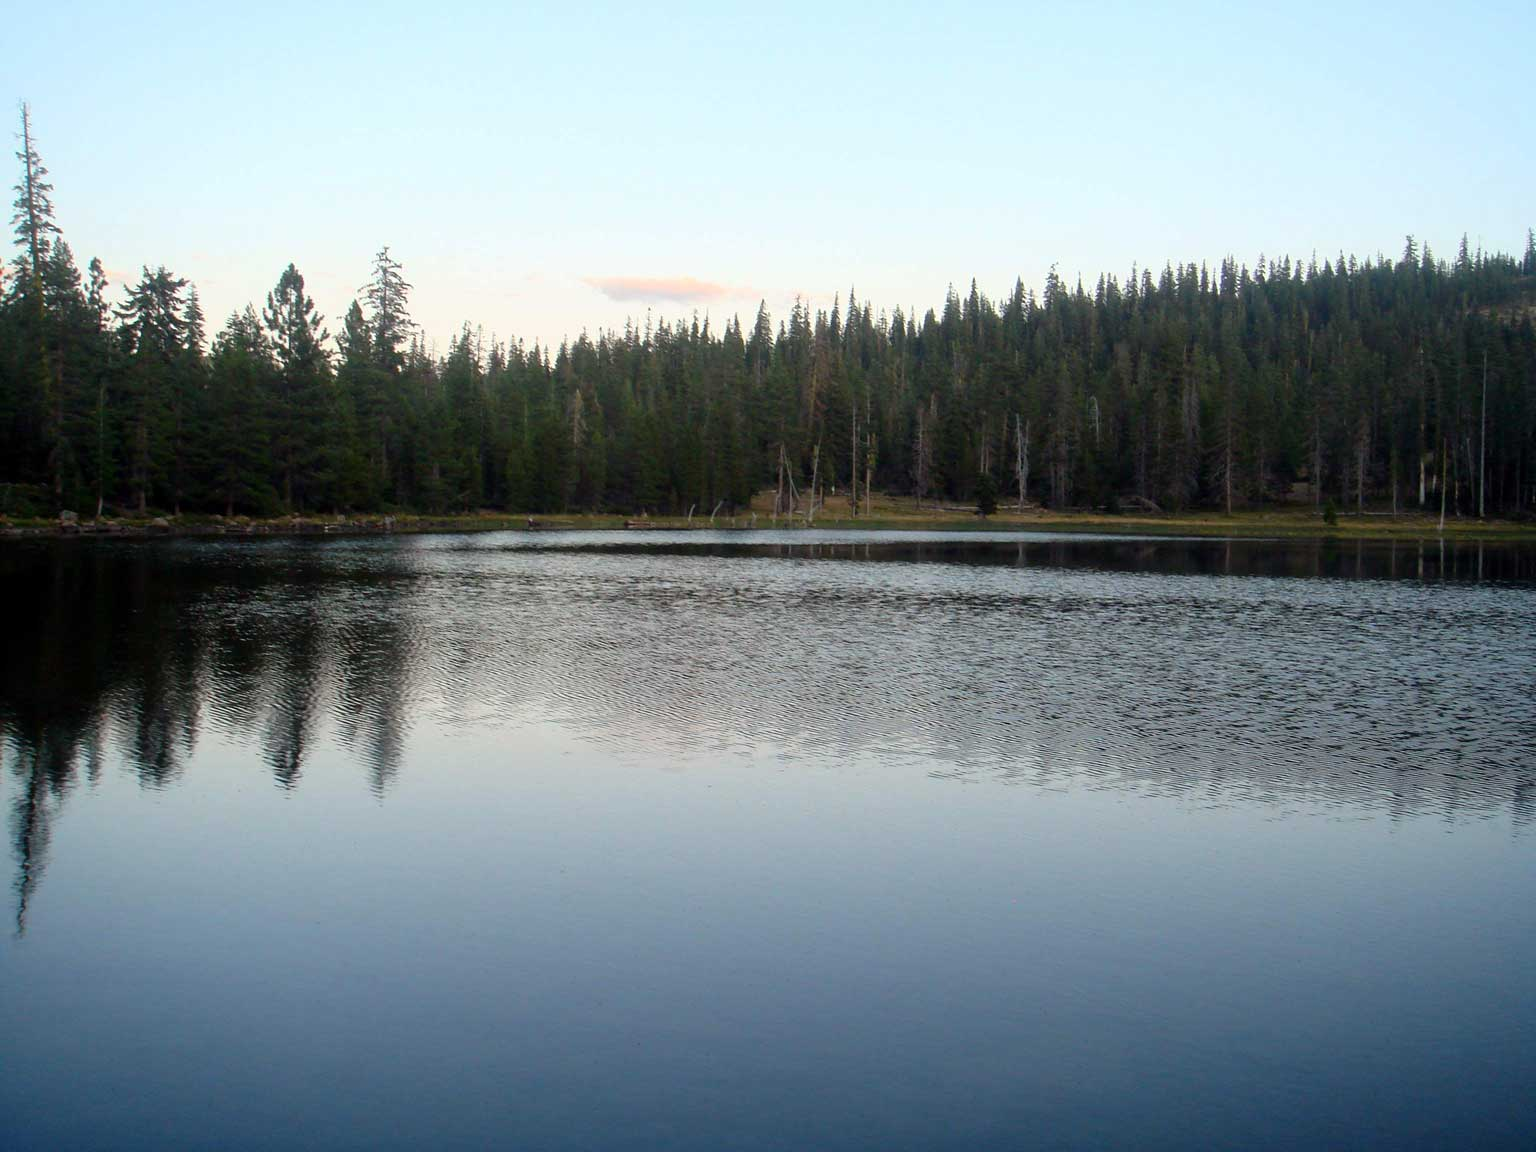 Gumboot Lake at Dusk